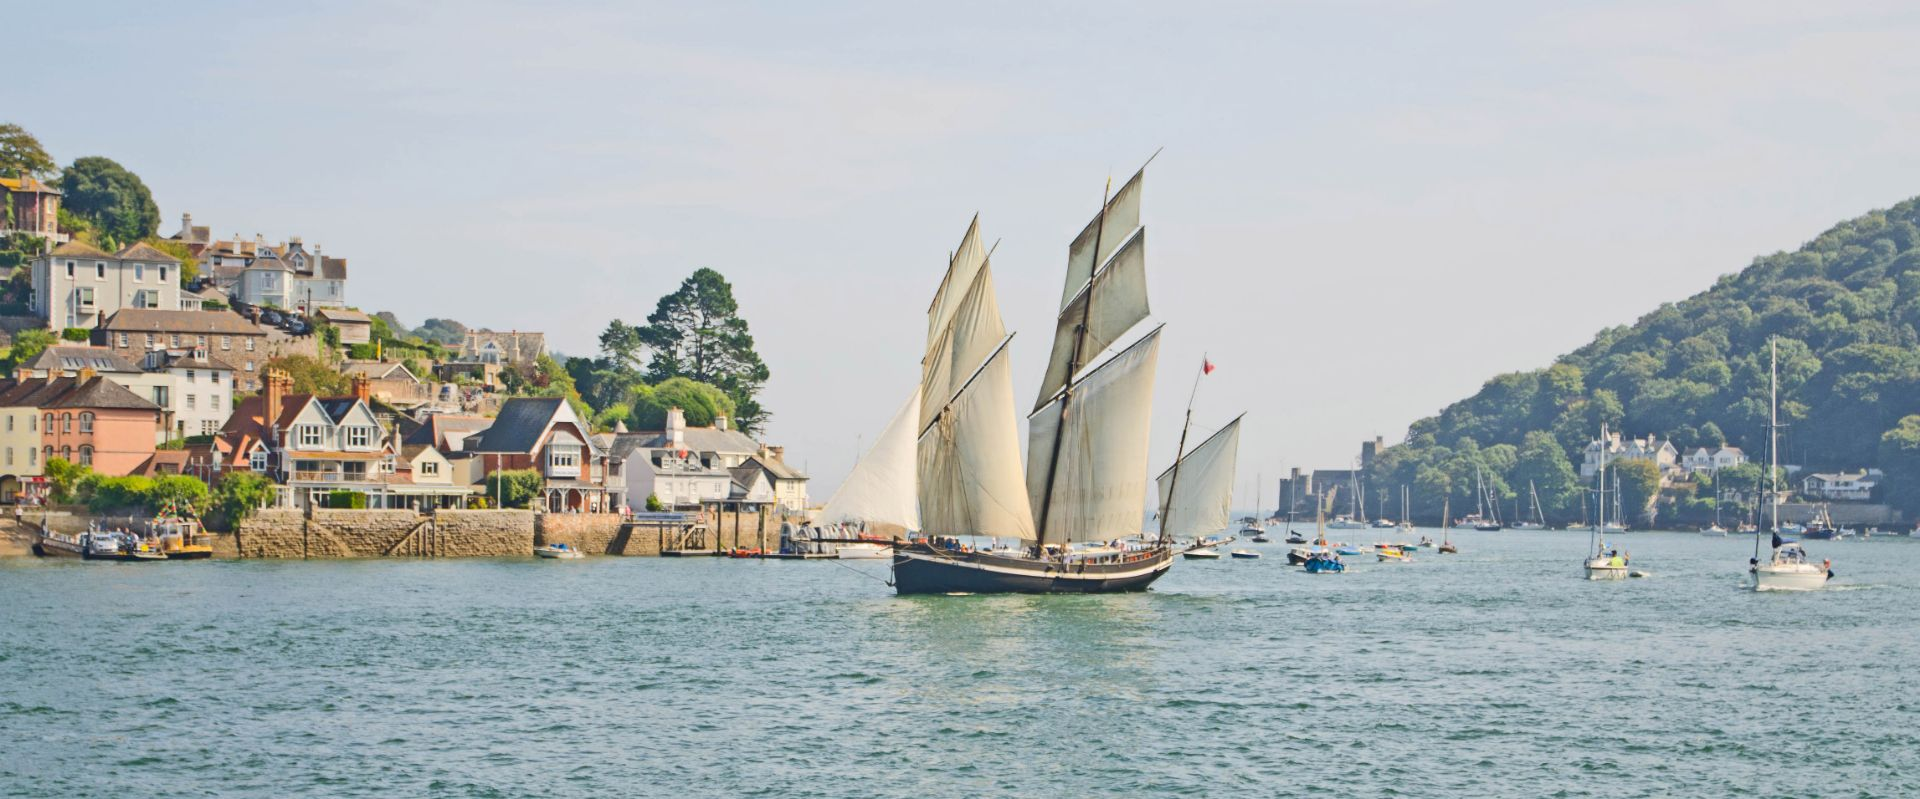 Sailing boat in Dartmouth